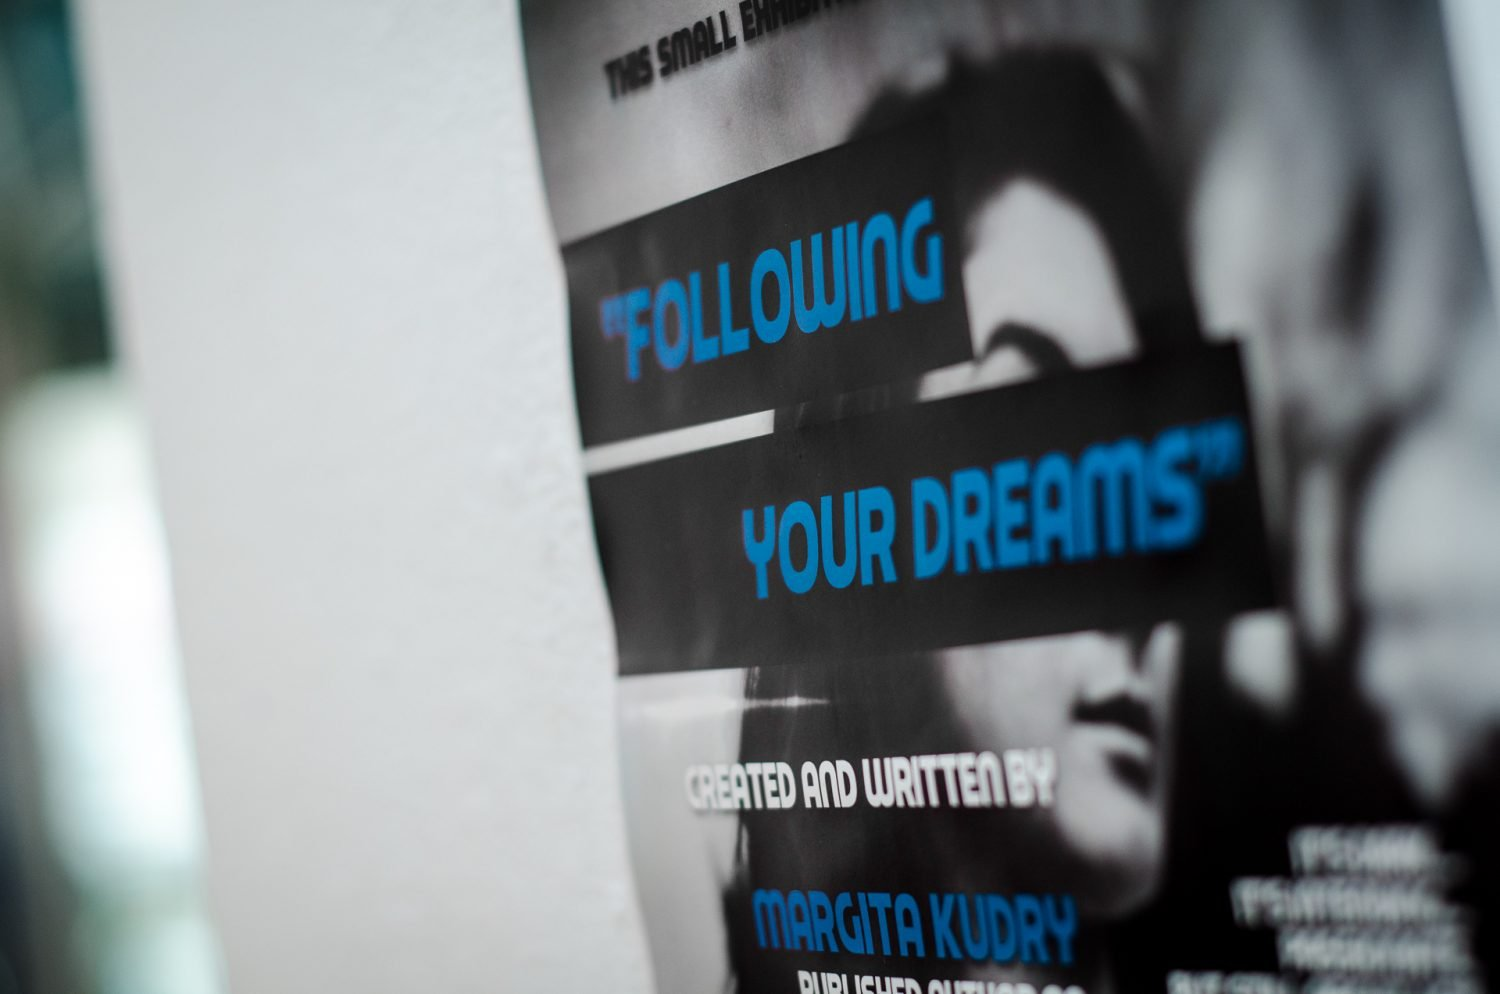 following-your-dreams-16